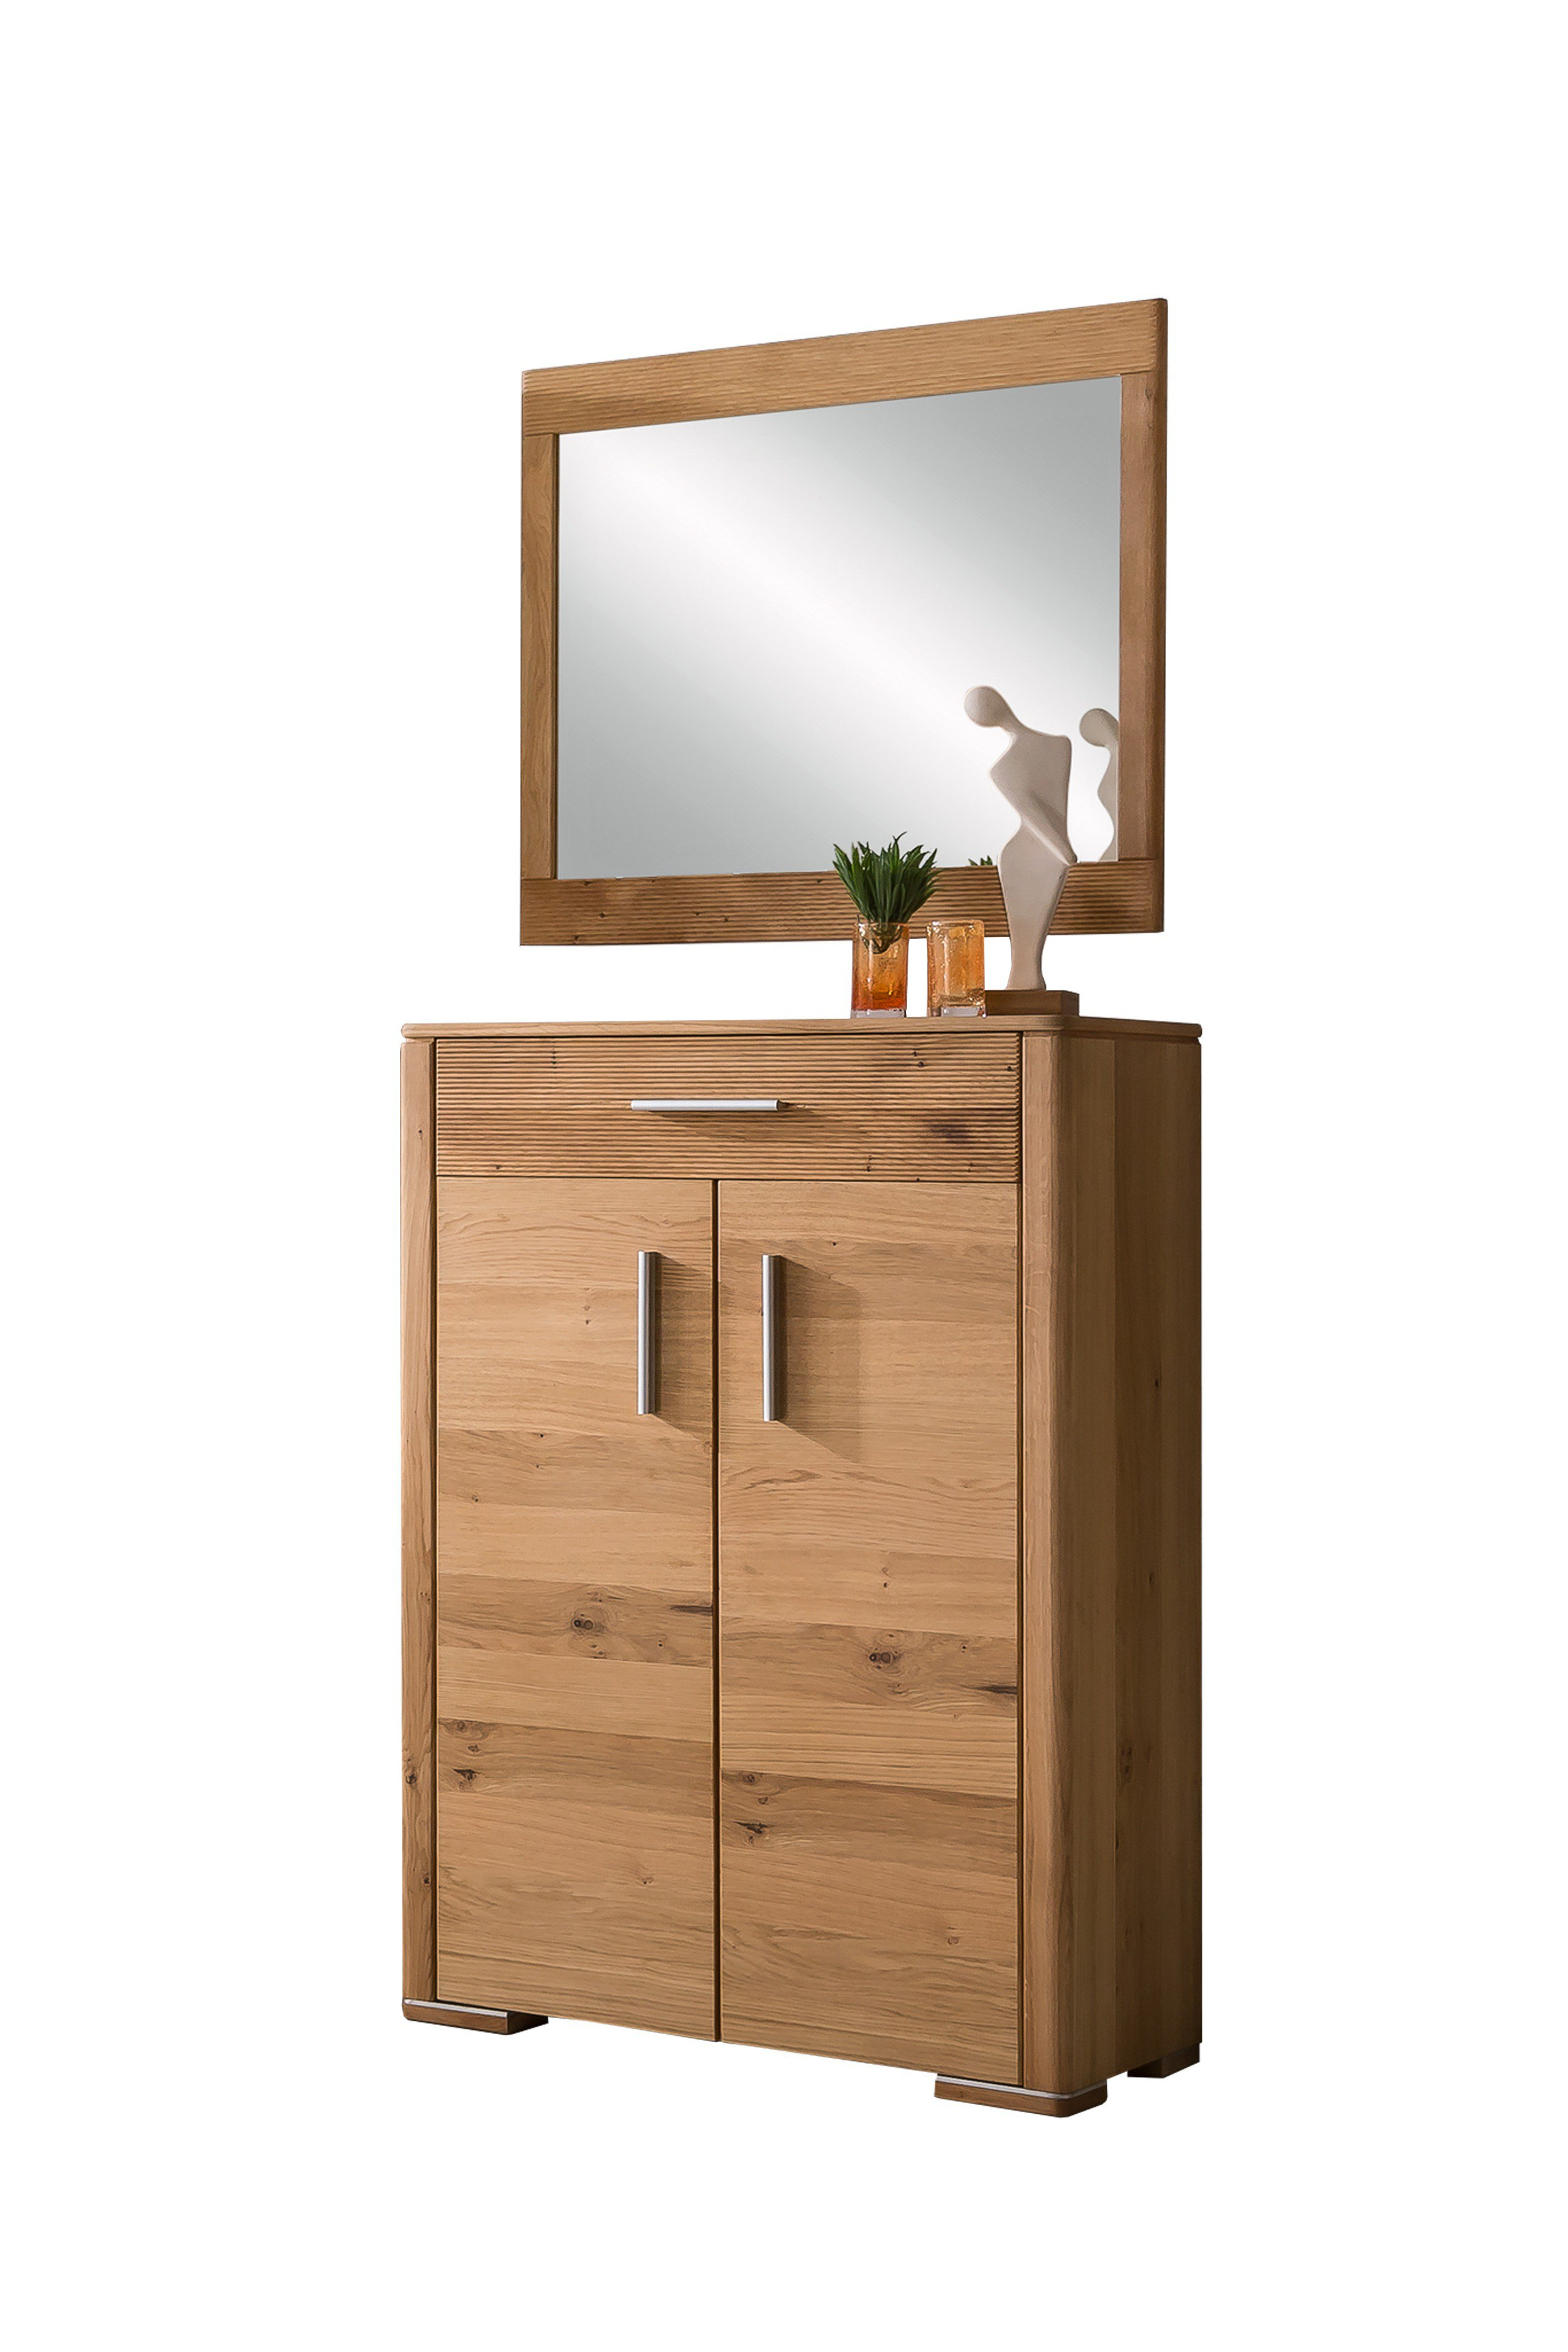 bfk m bel bogota garderobe in wildeiche m bel letz ihr online shop. Black Bedroom Furniture Sets. Home Design Ideas